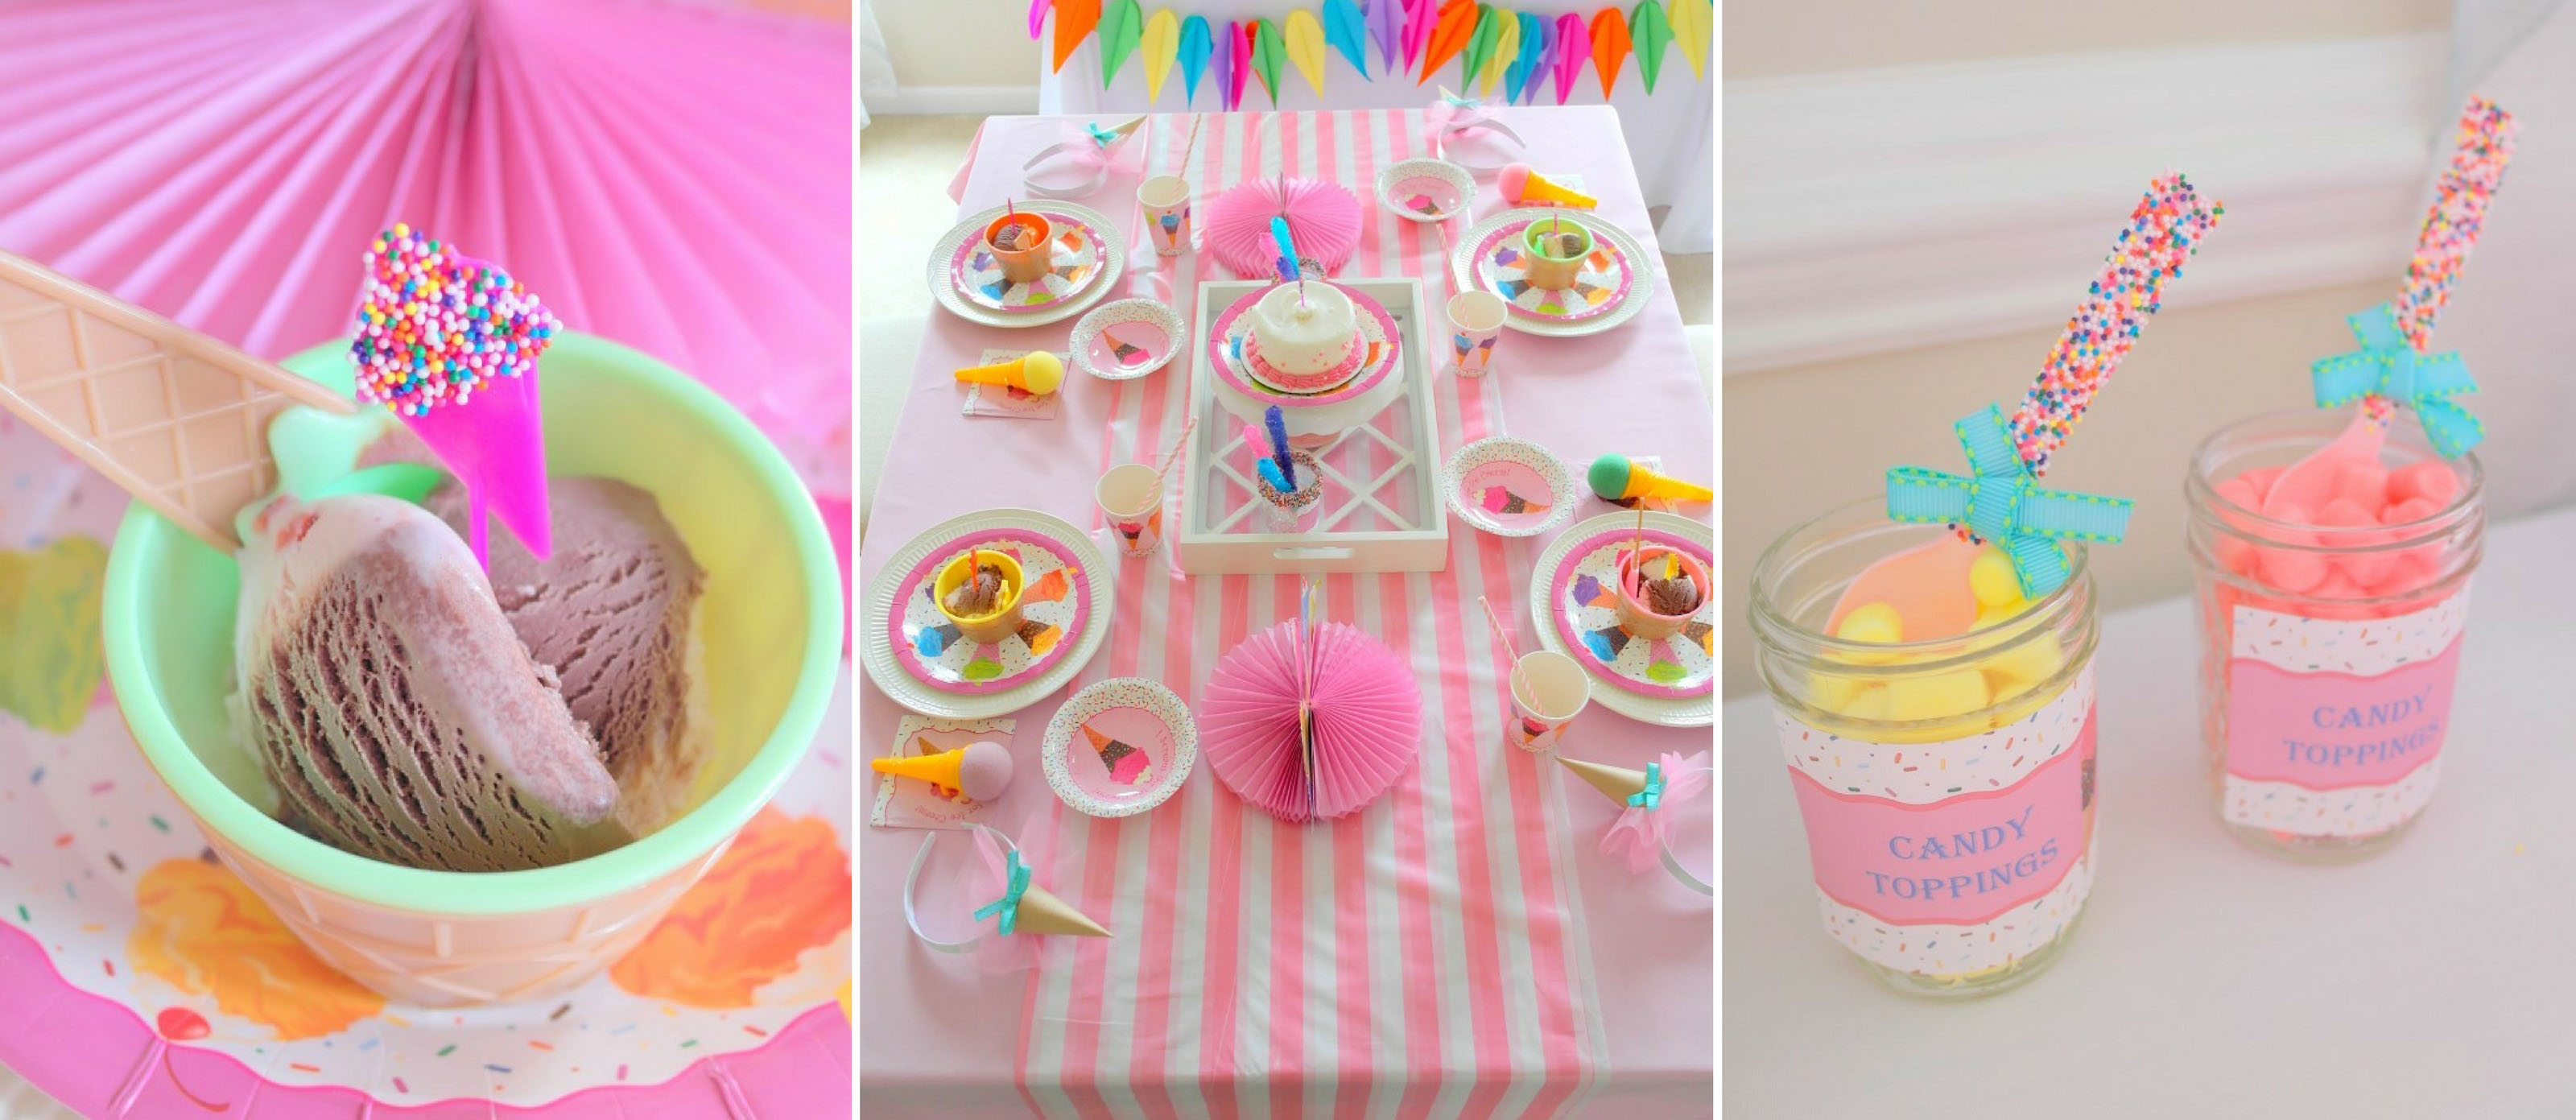 12 ~Birthday Party Supplies Pink FABULOUS CELEBRATION HANGING SWIRL DECORATIONS